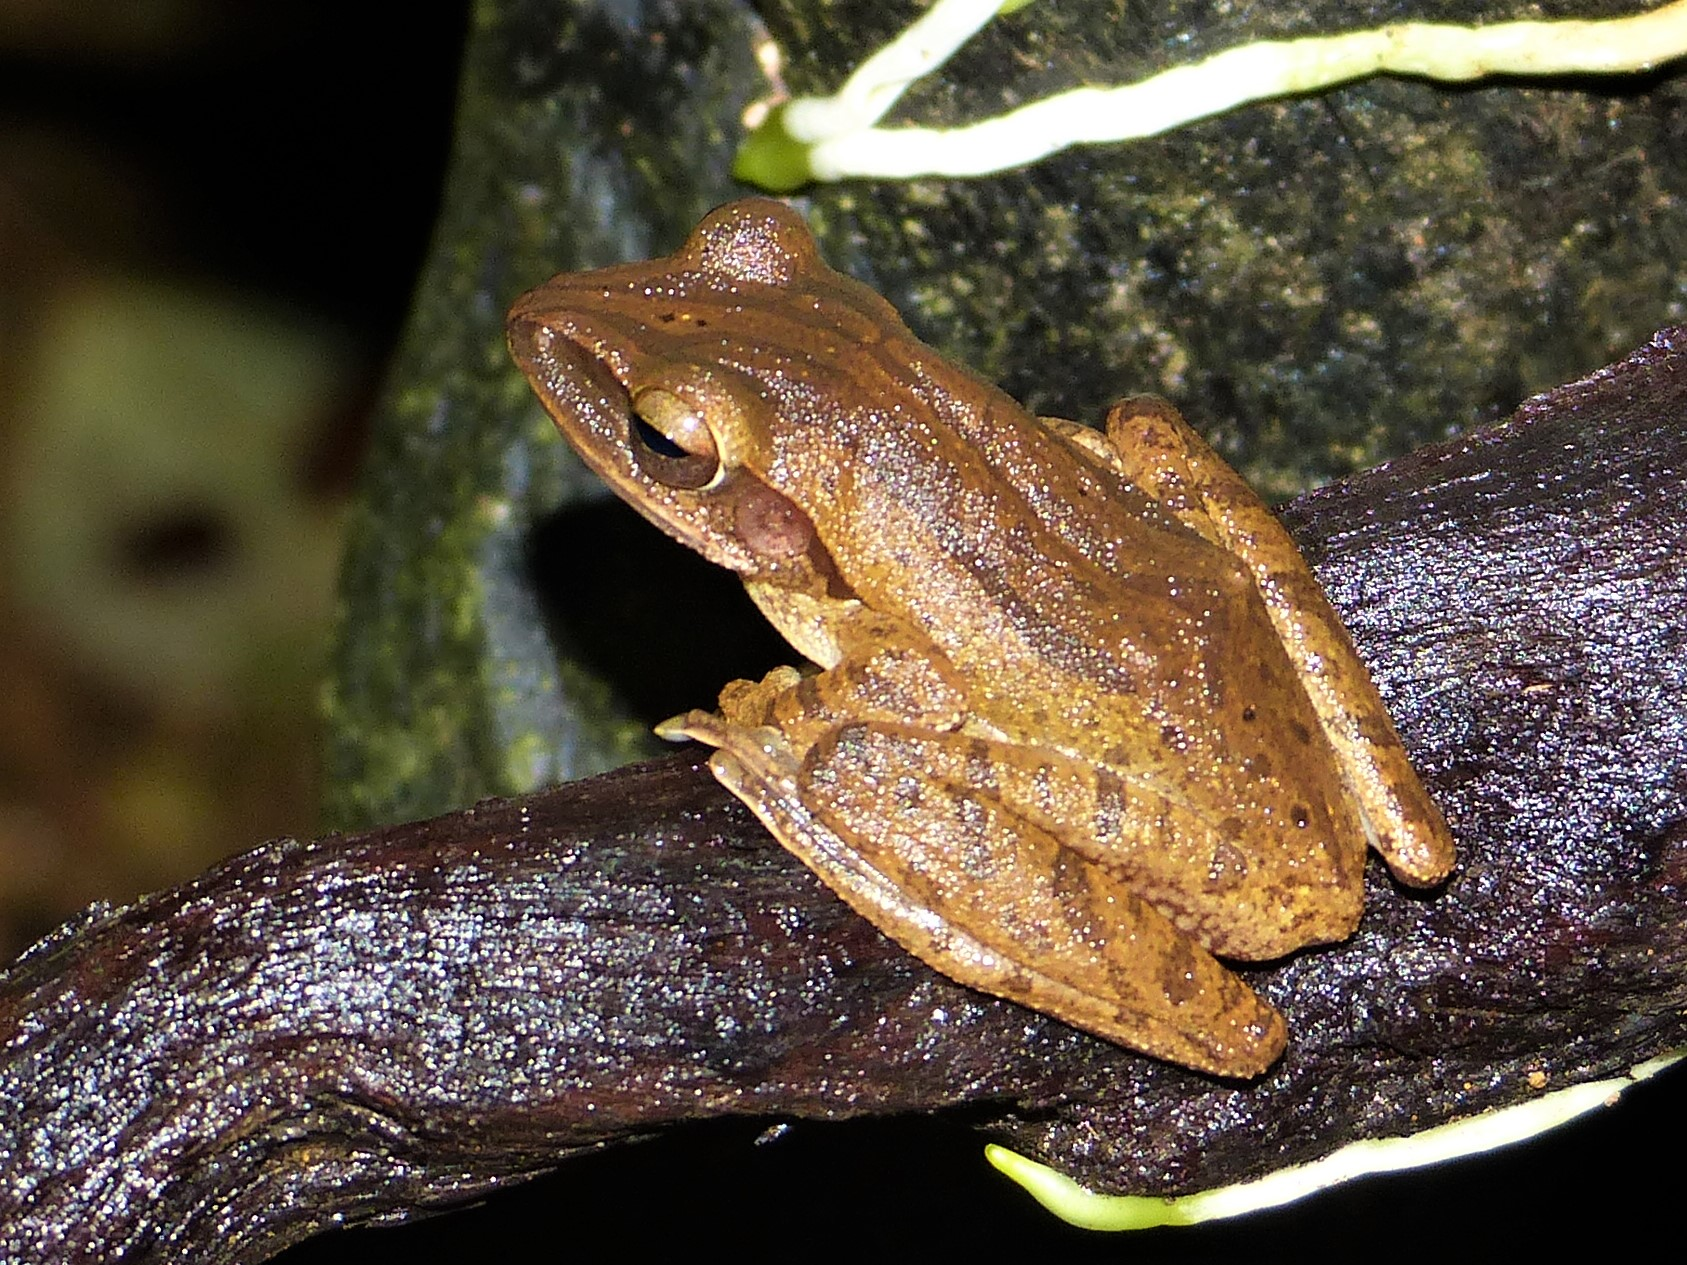 Asian golden tree frog facts images 499